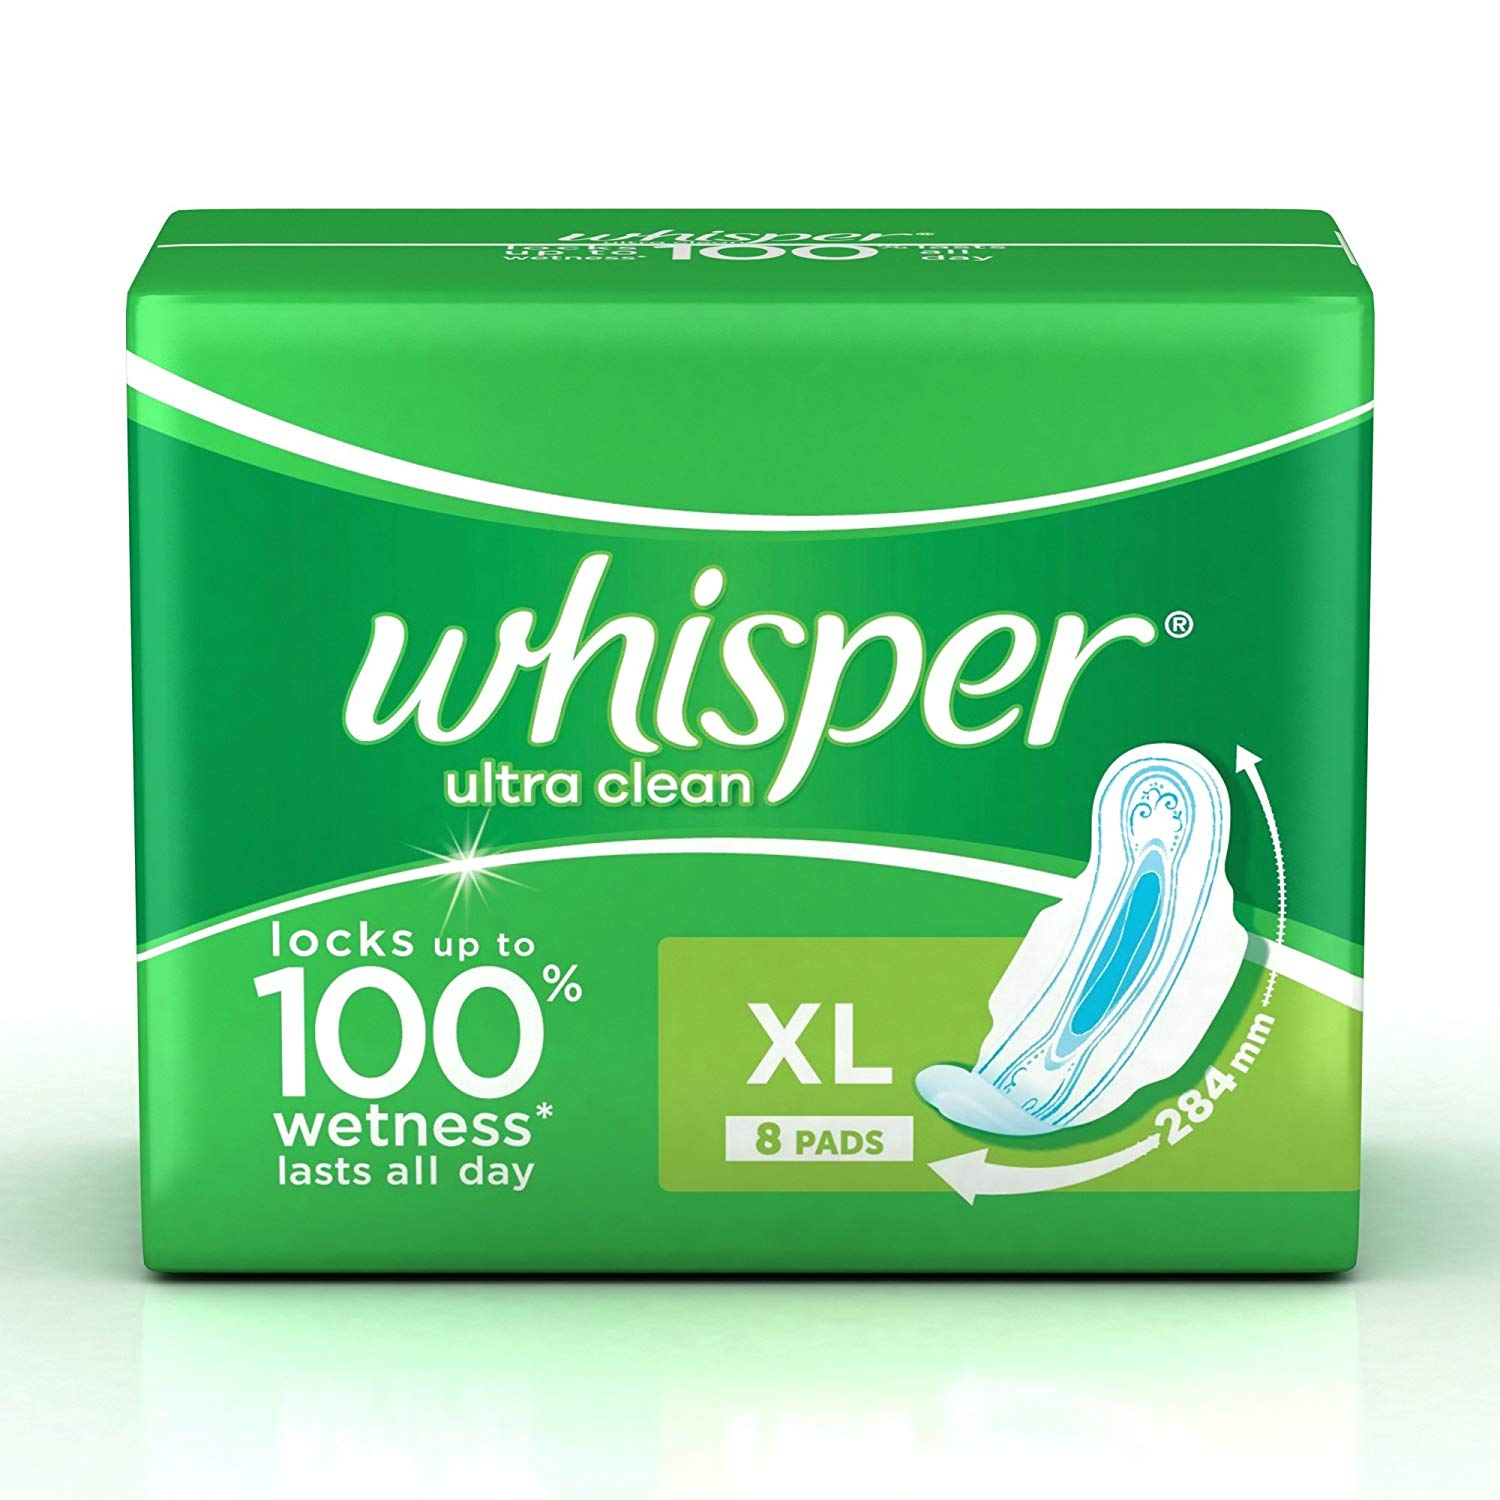 Whisper Ultra Clean xl 8's